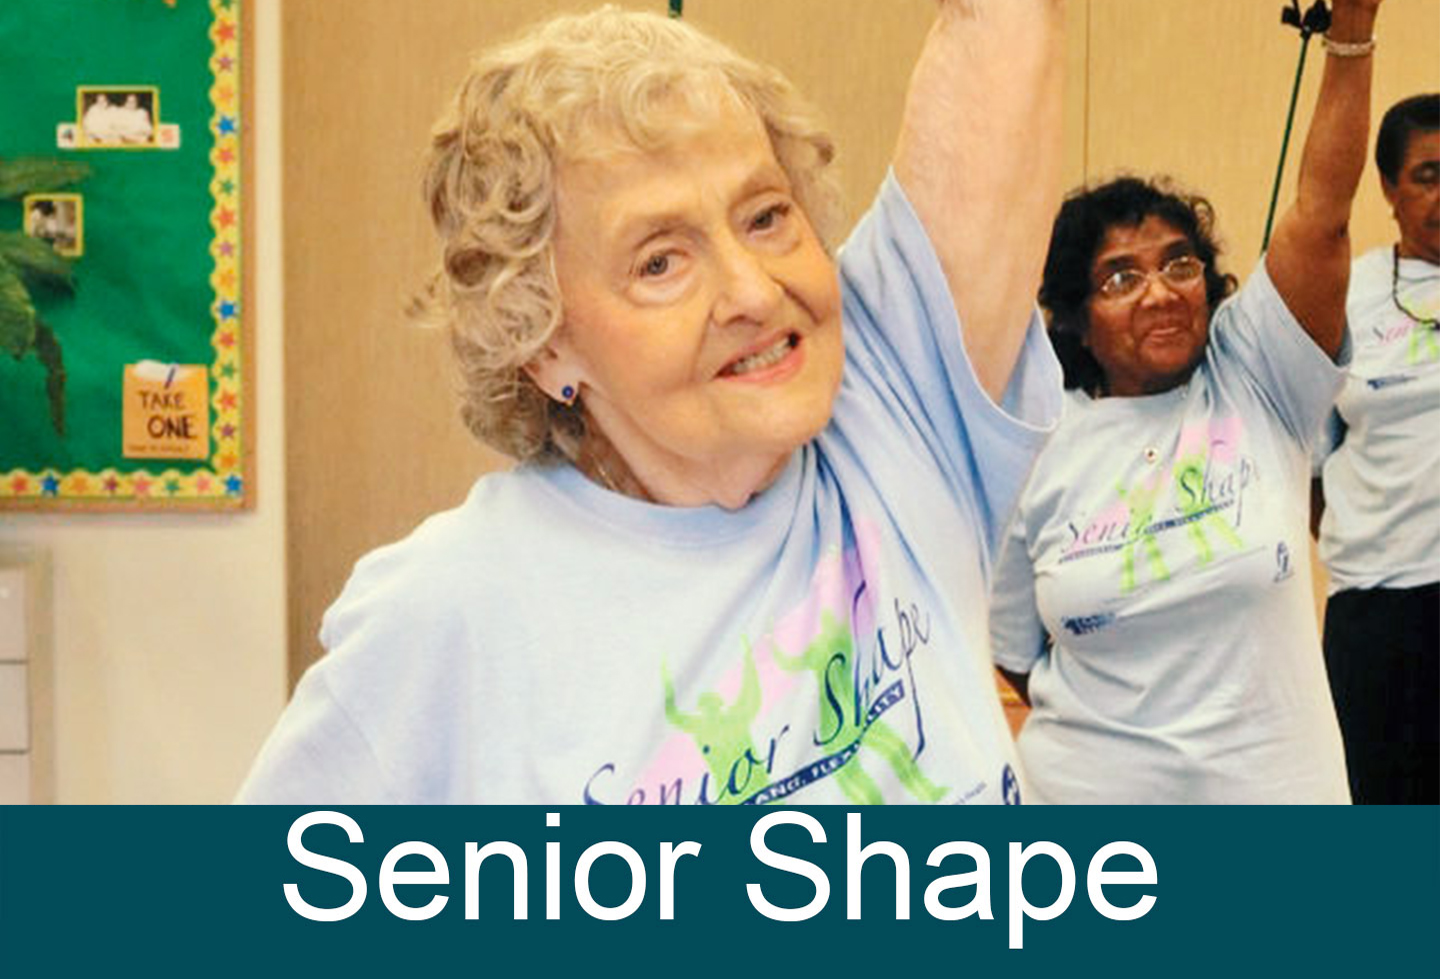 Senior Shape